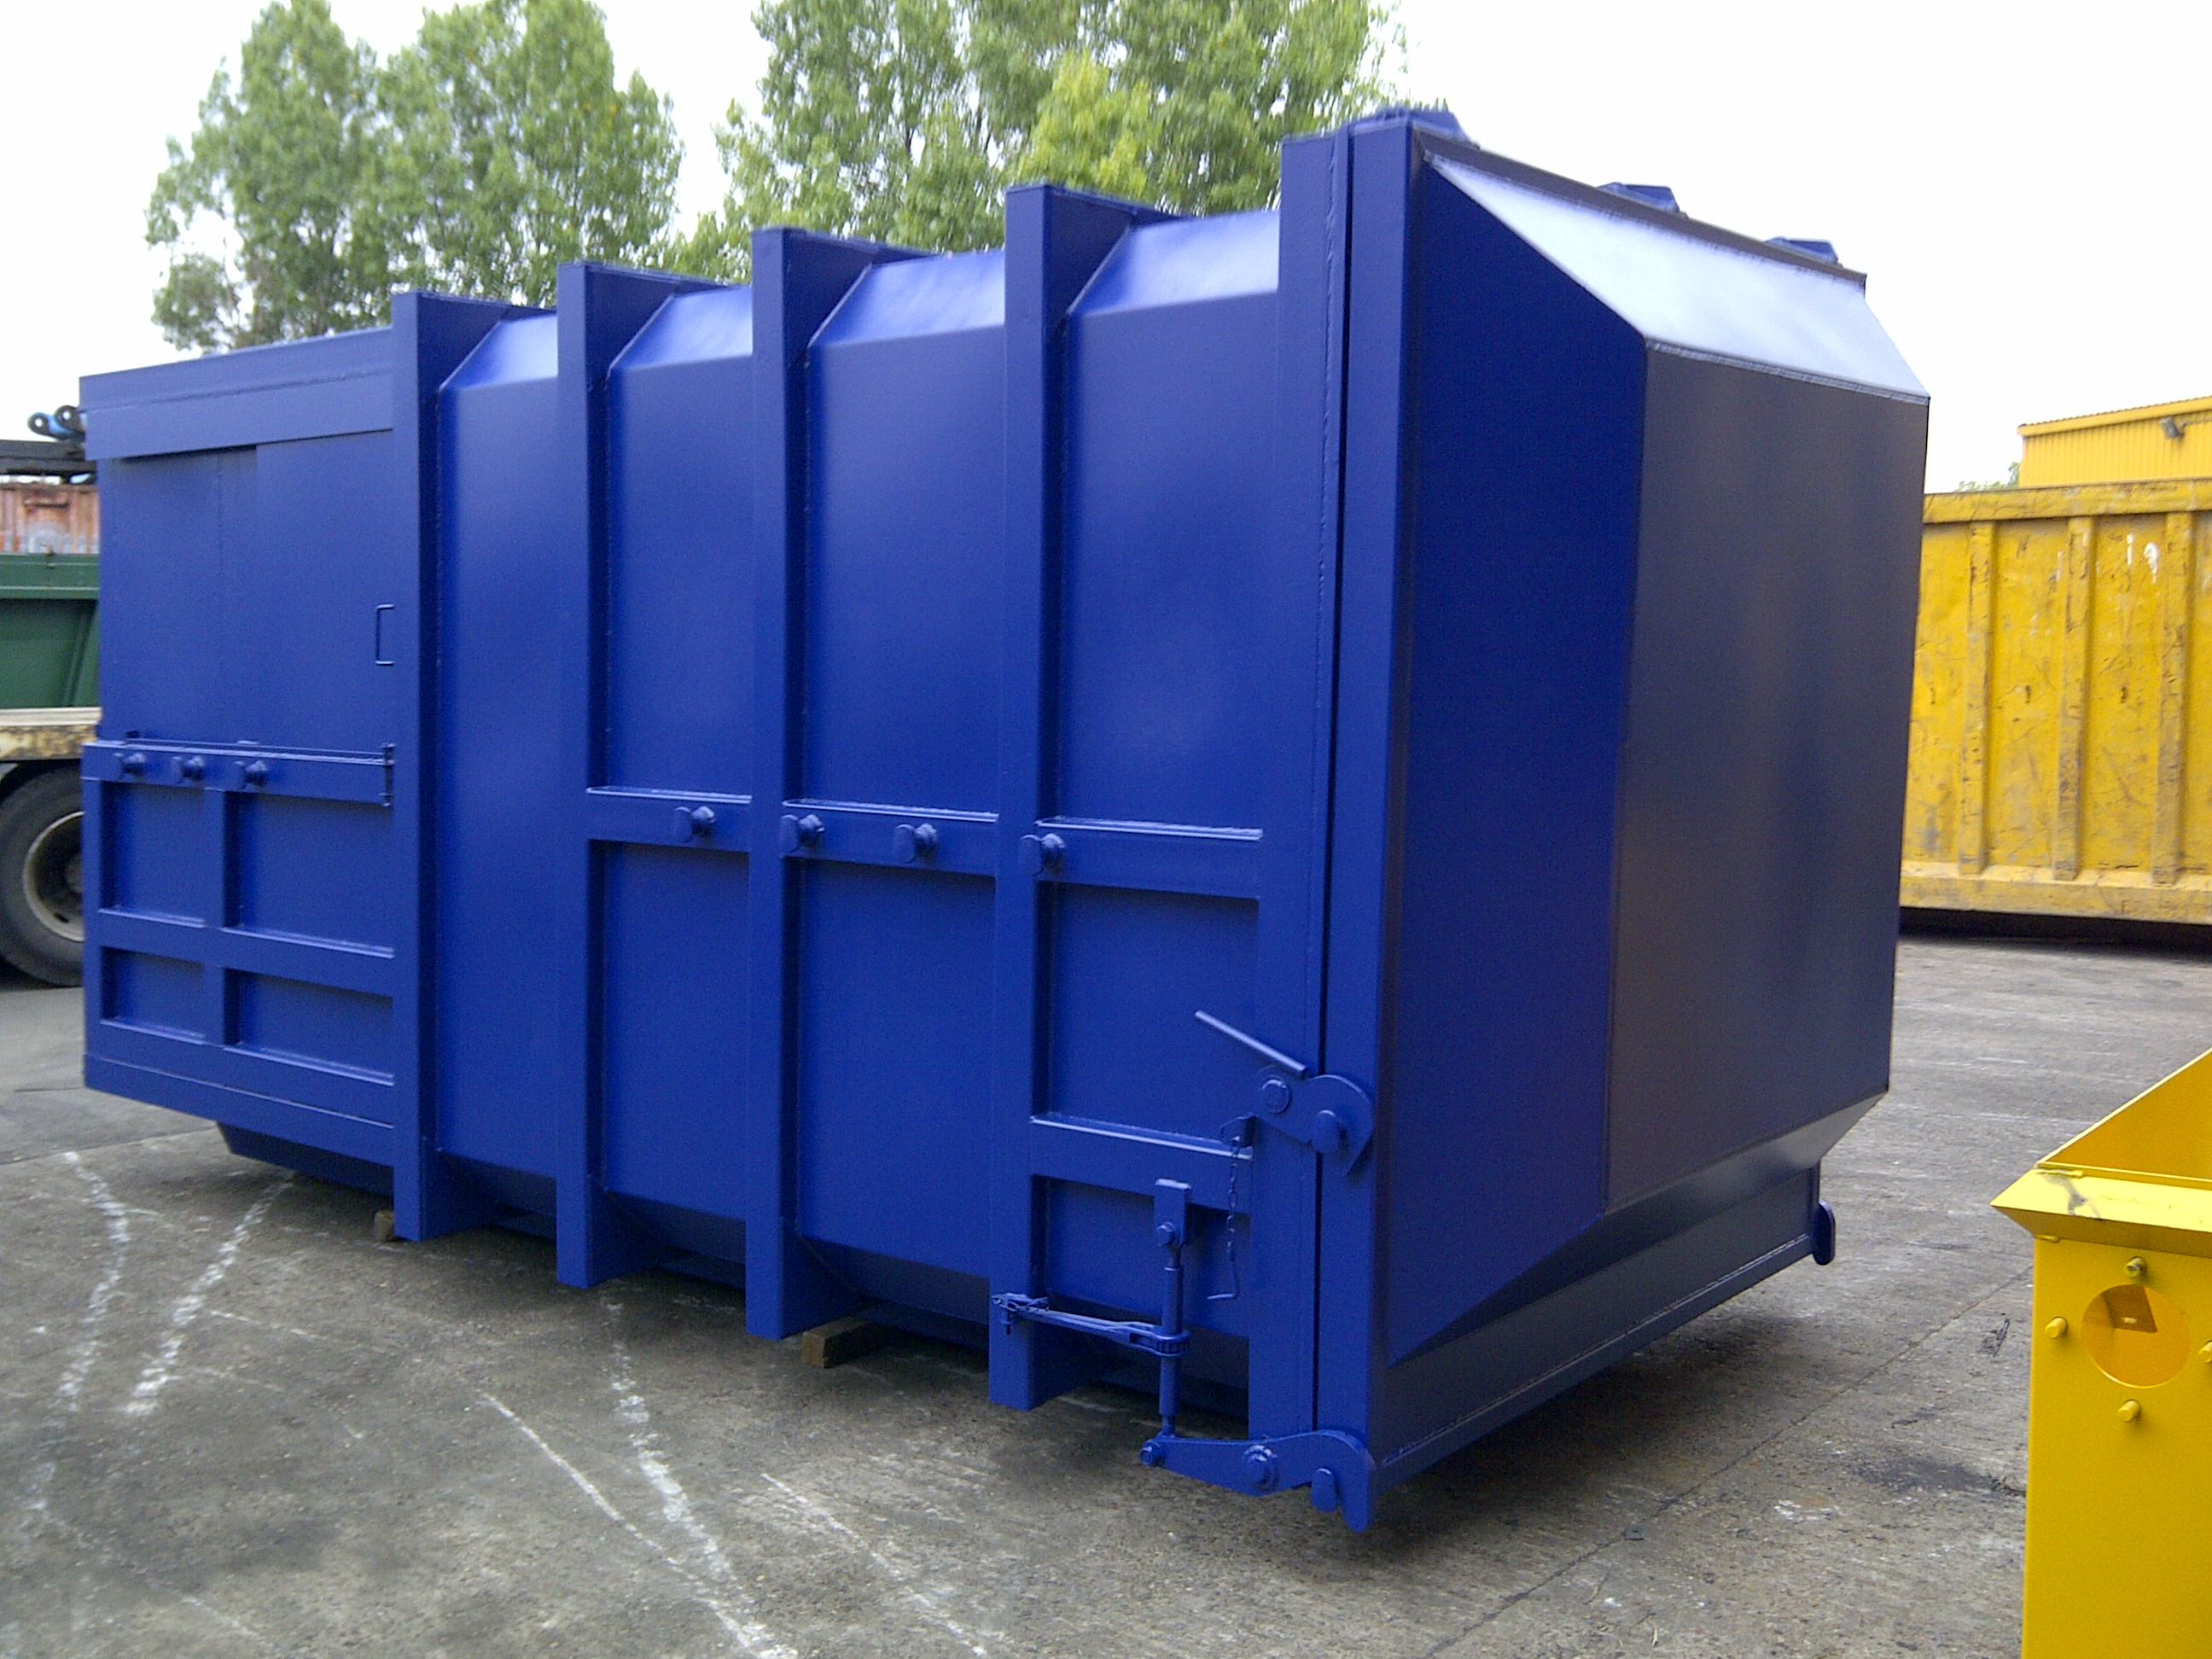 Image result for waste containers